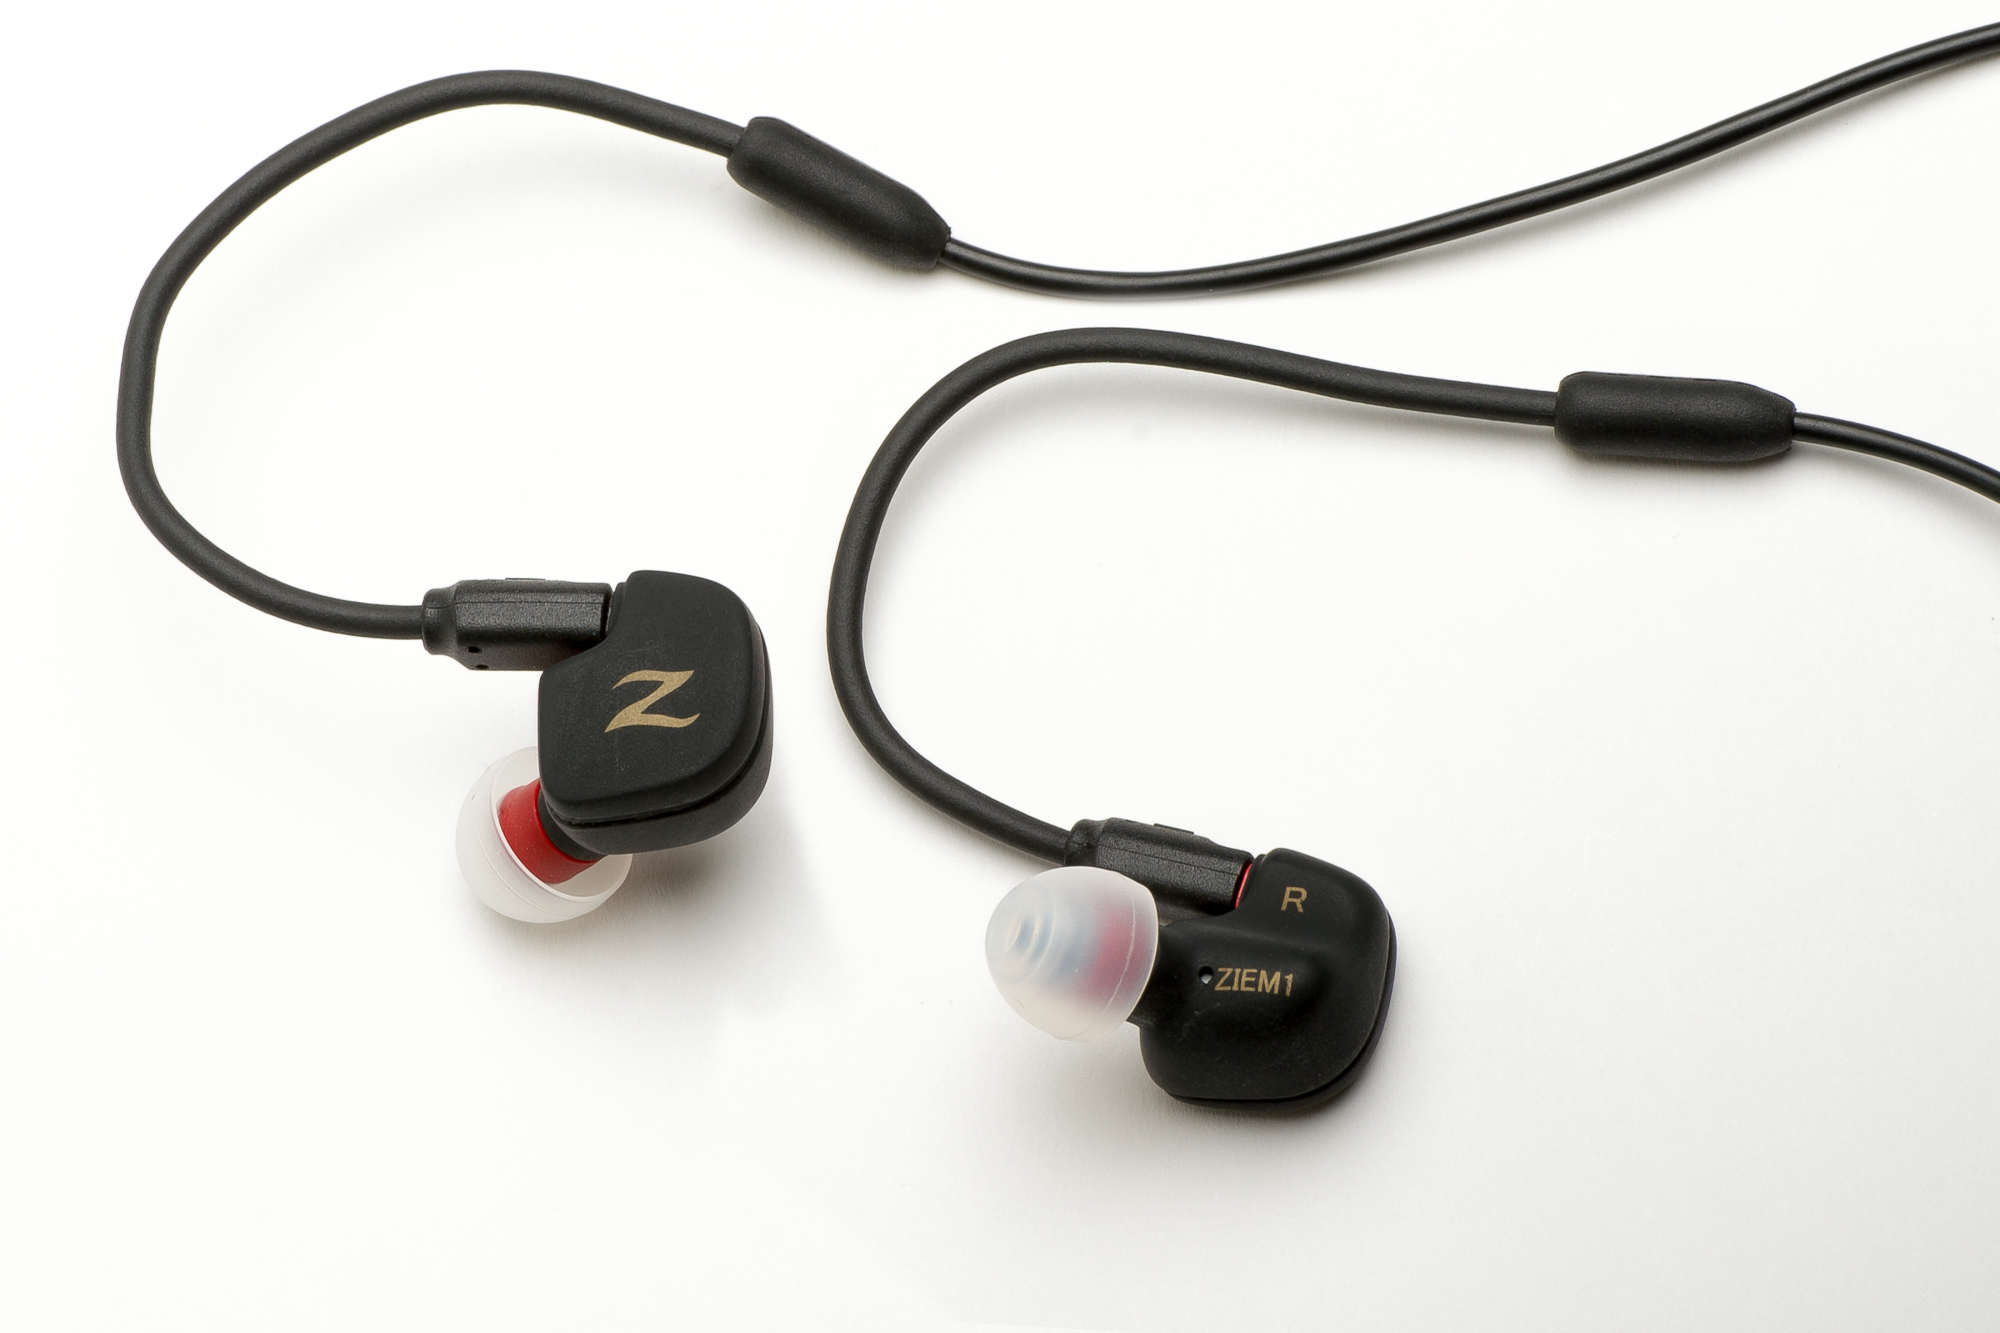 Zildjian ZIEM1 Professional In-Ear Monitors